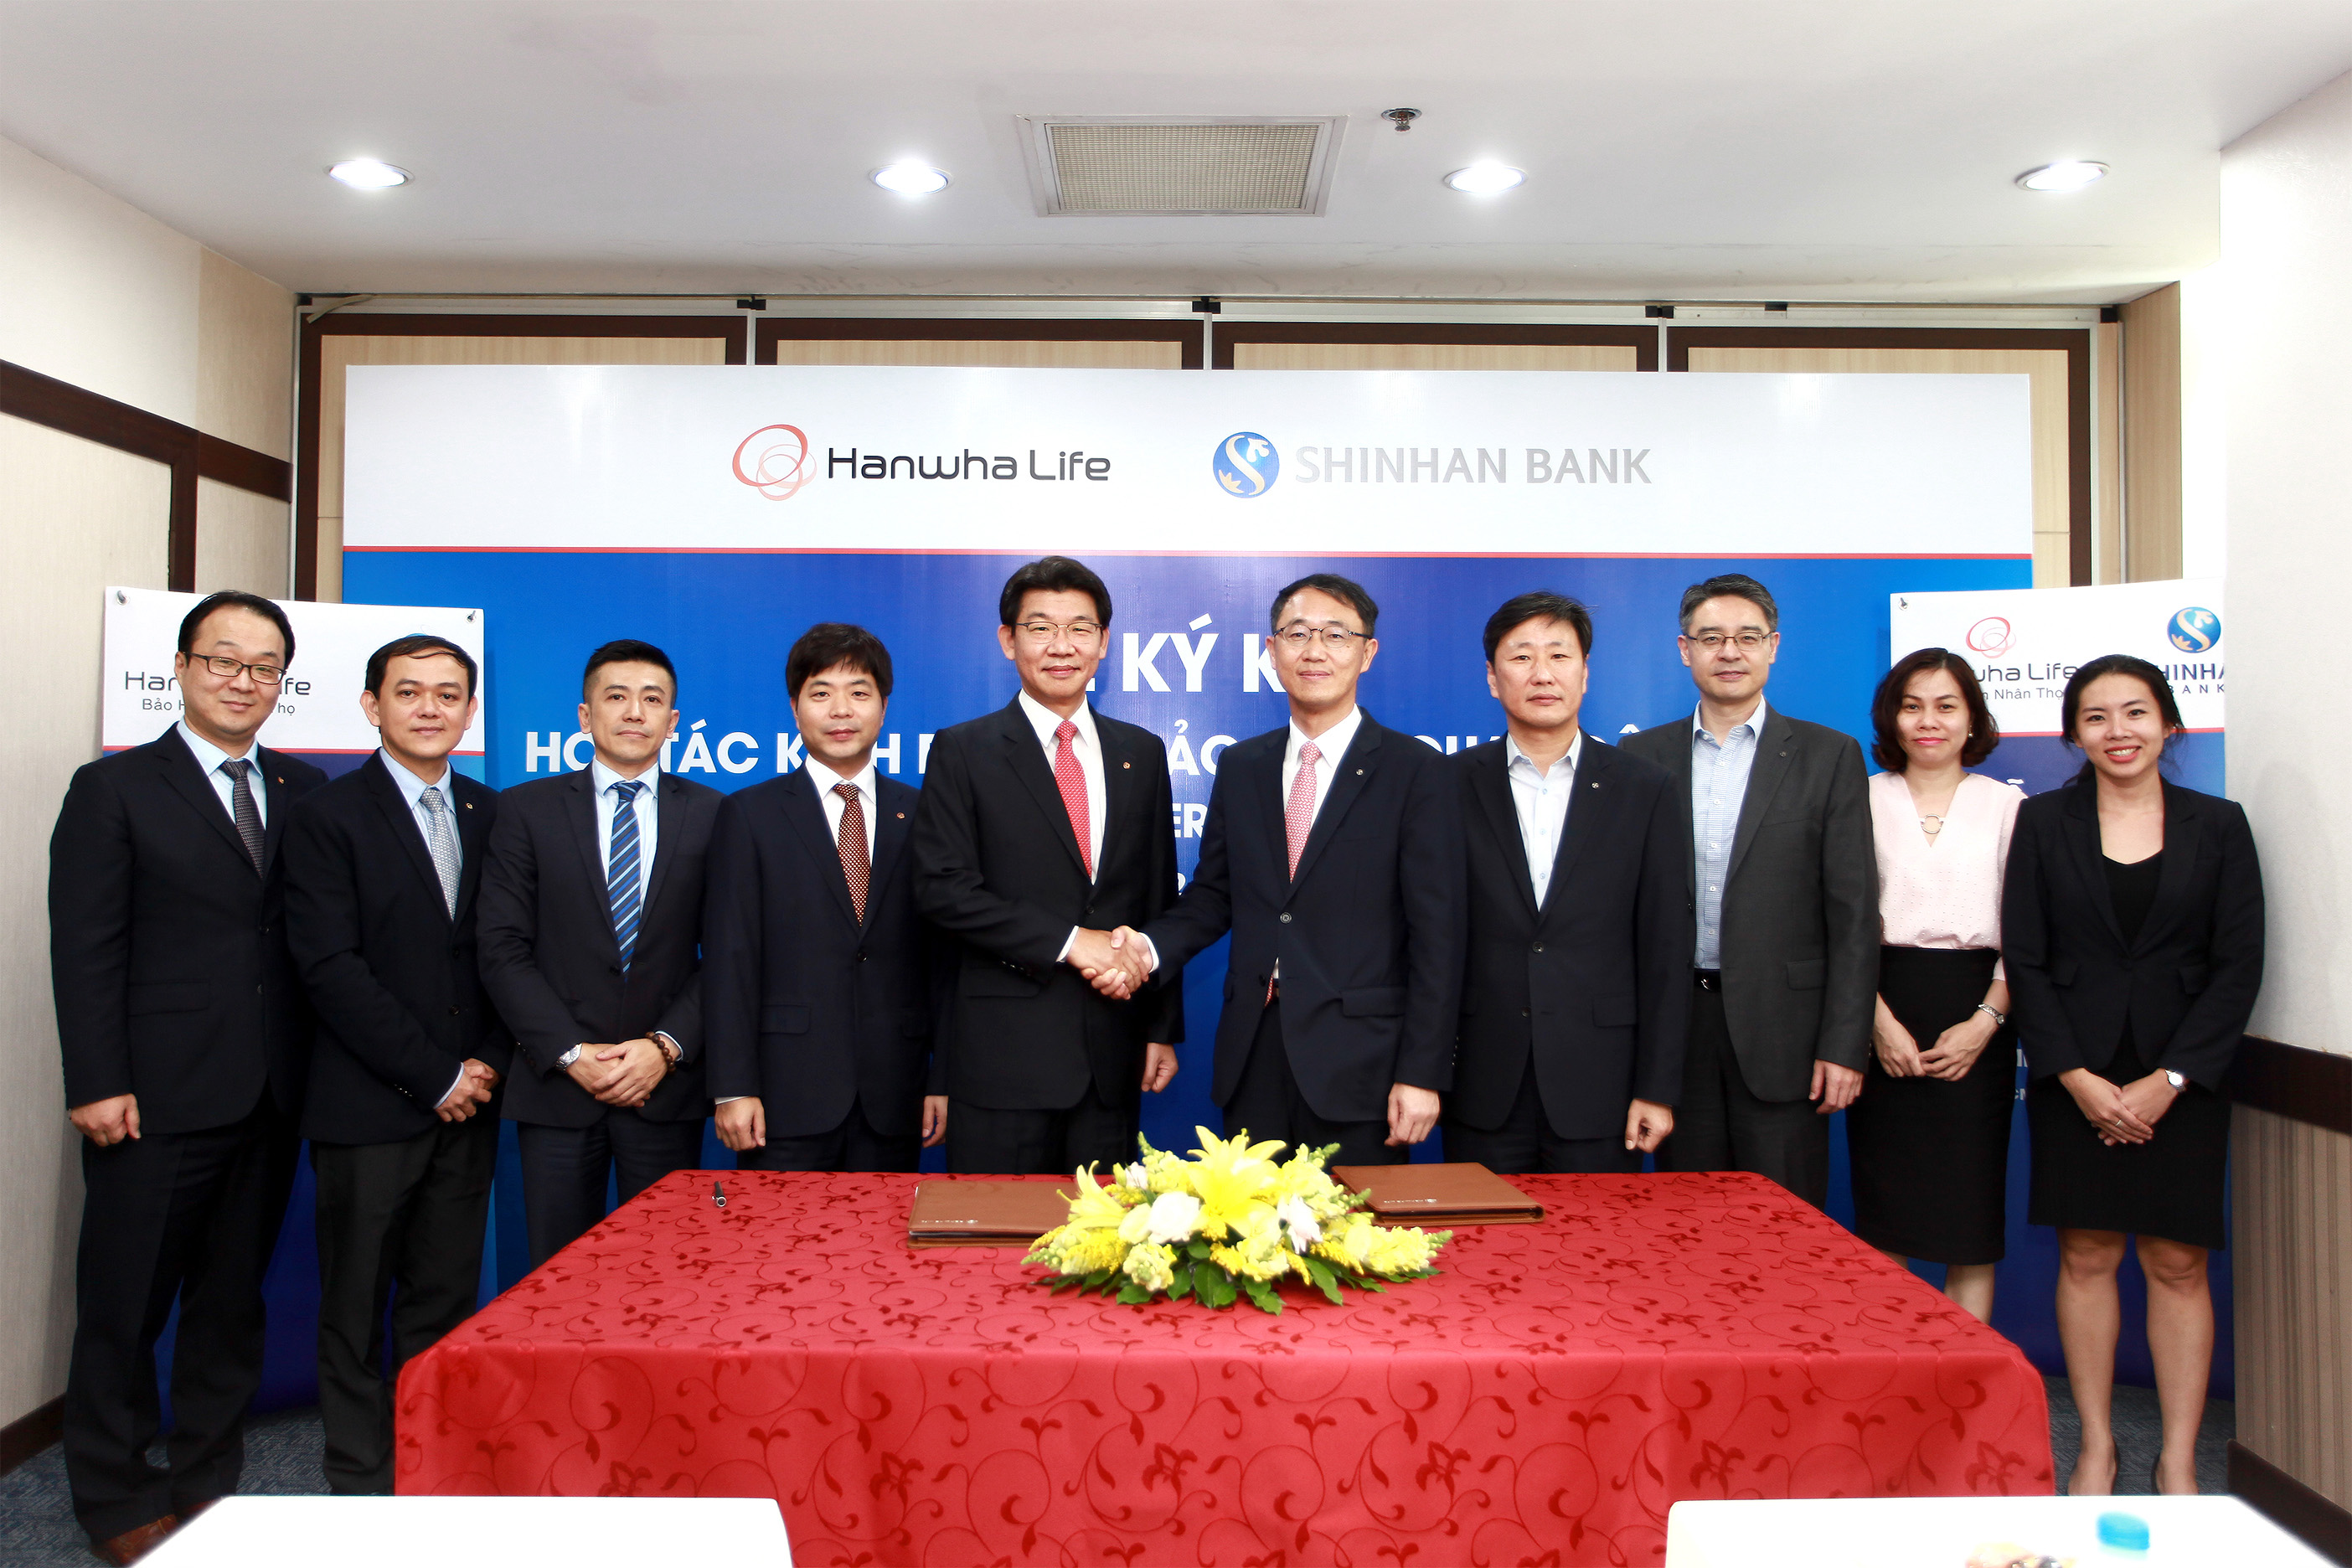 hanwha life vietnam and shinhan bank vietnam sign bancassurance deal